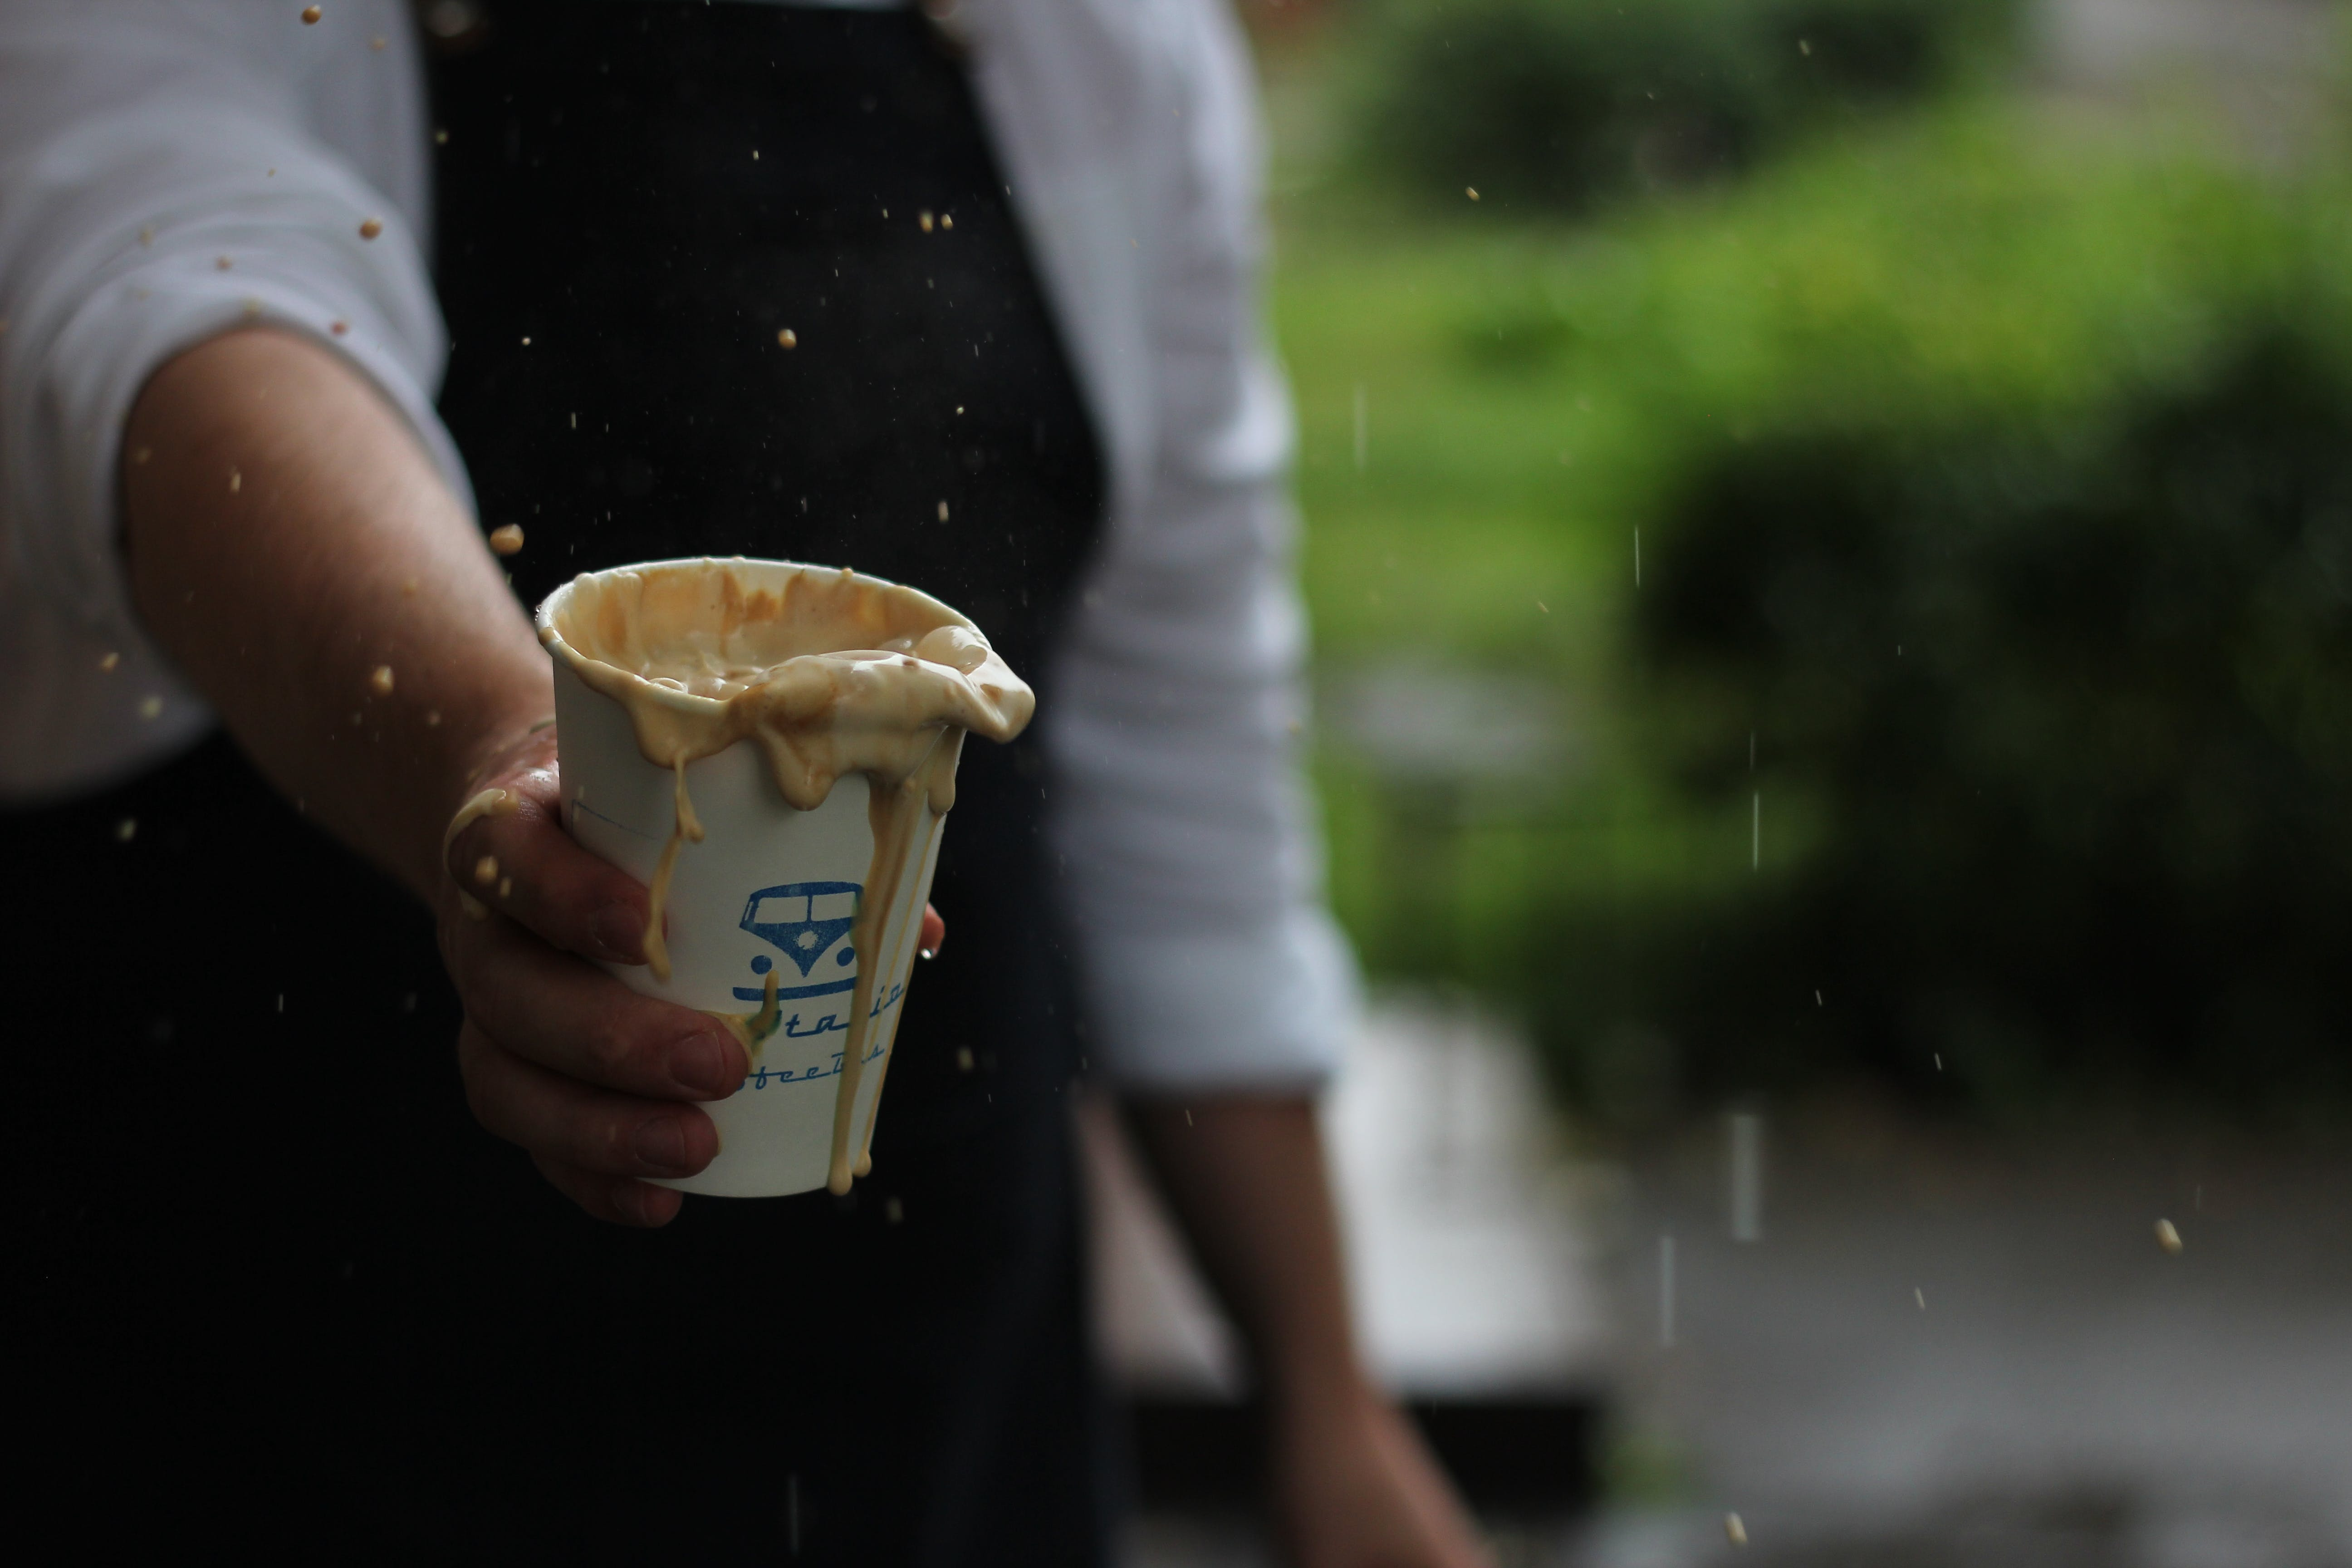 Person Holding Messy Ice Cream on Cup